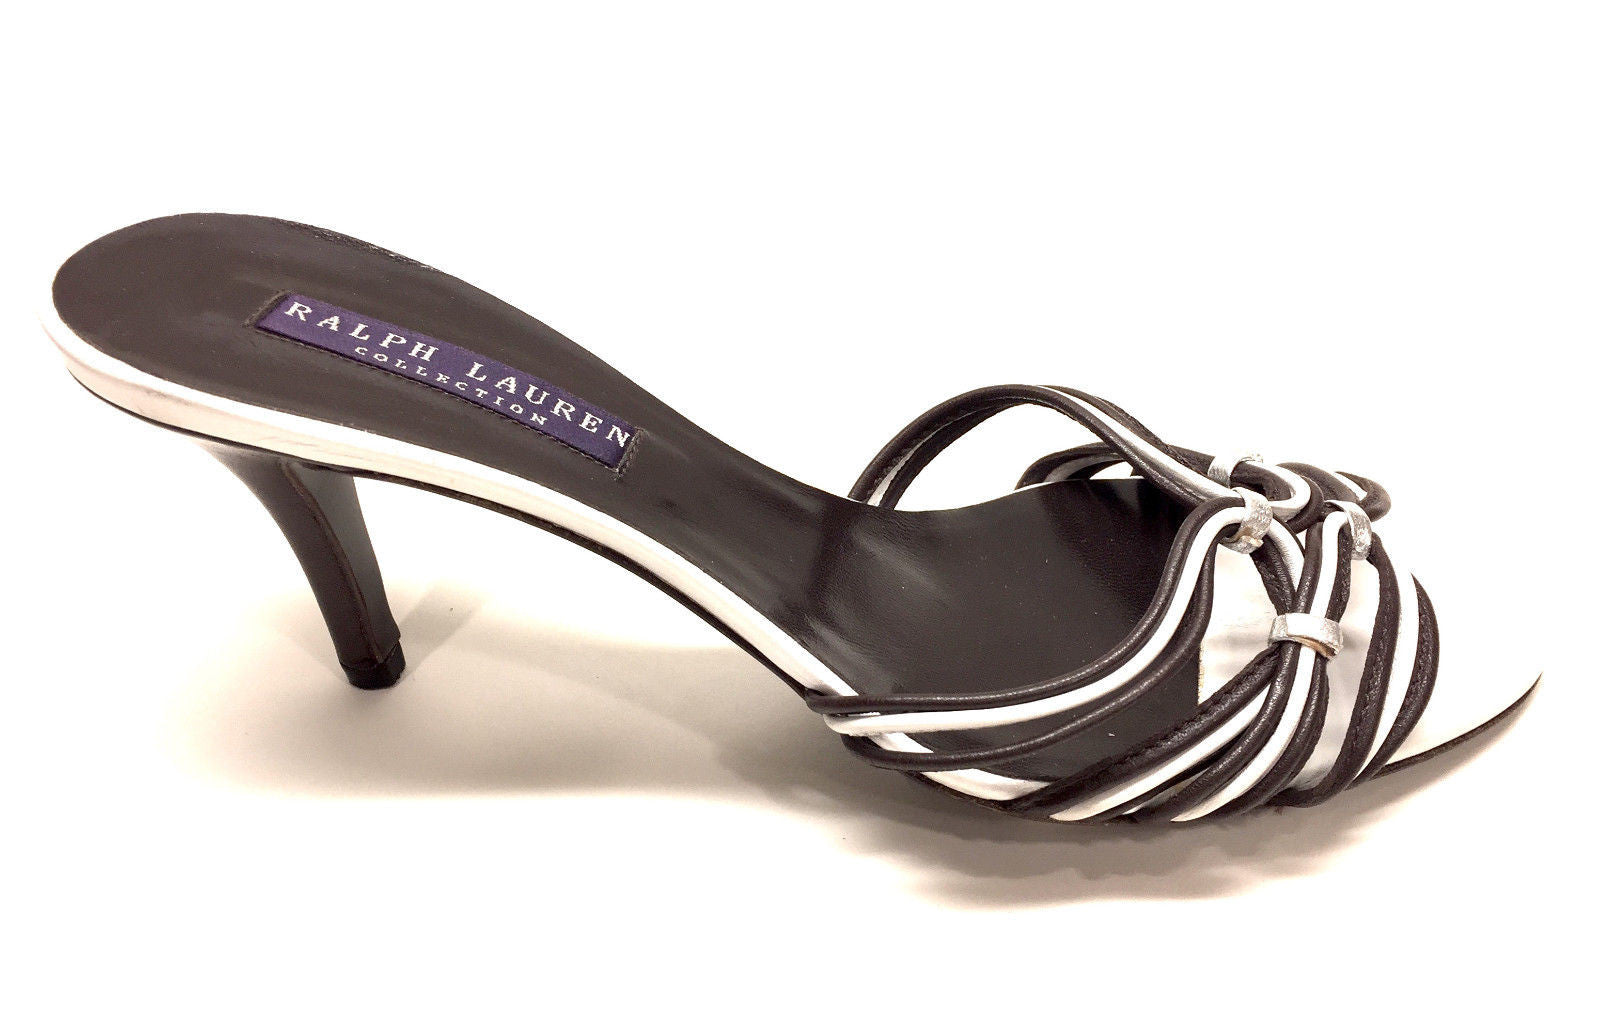 6e2ffc27d06a39 bisbiz.com RALPH LAUREN Purple Label Brown White Leather Strappy Heel  Sandals Mules Size ...